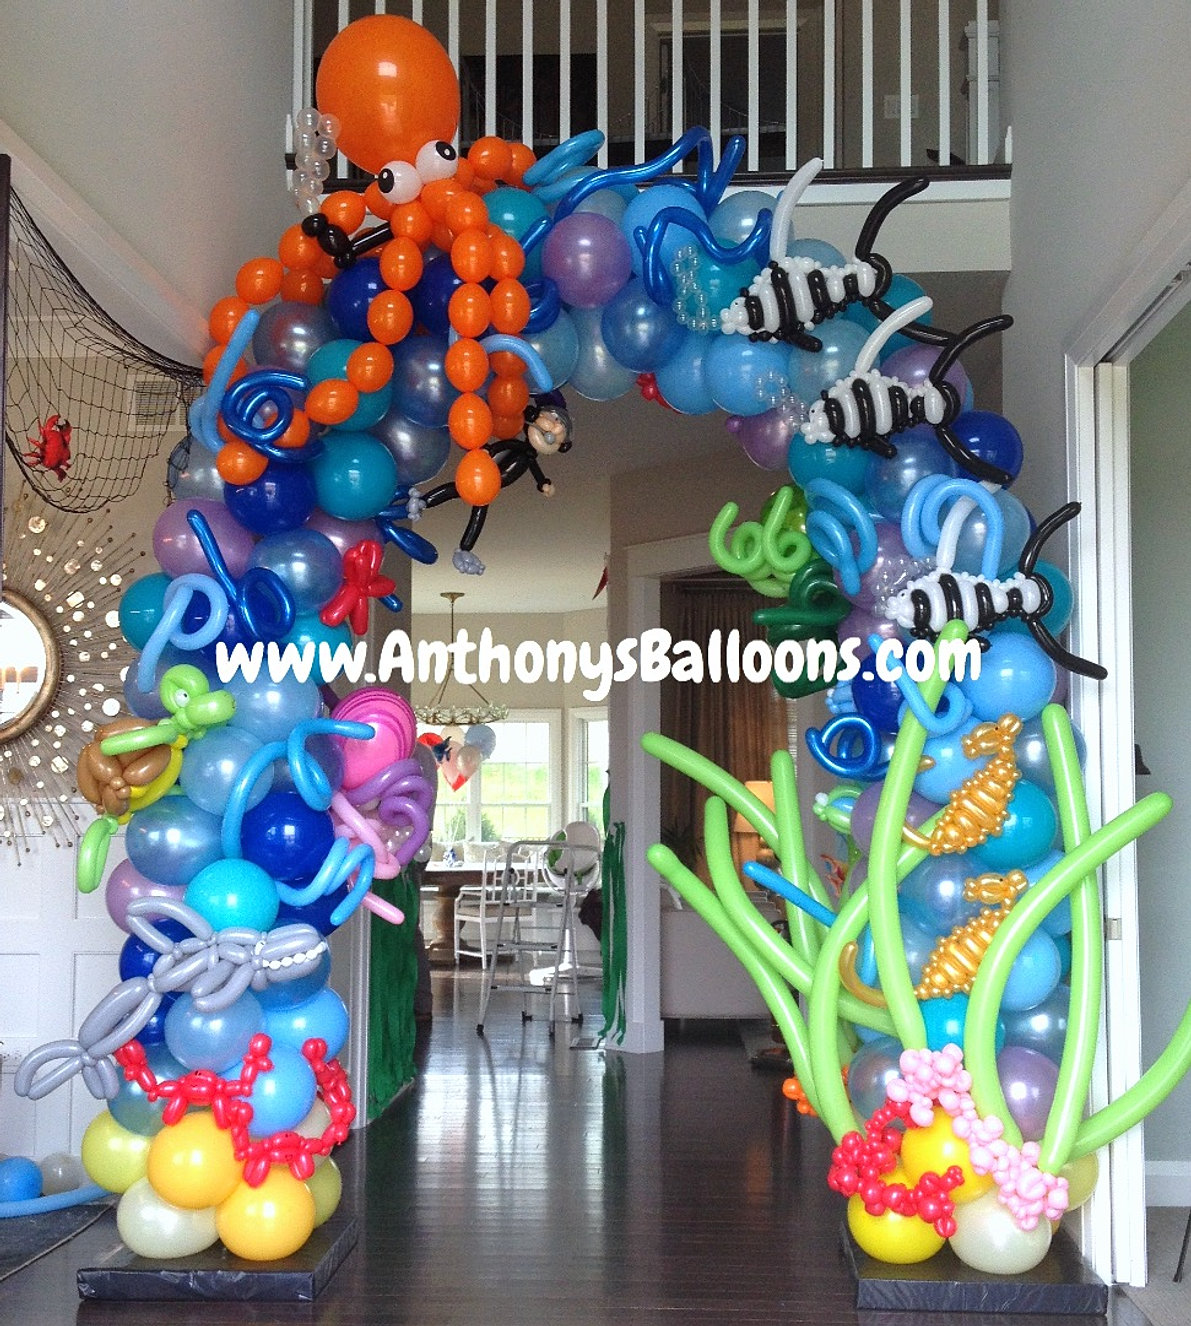 Balloon Decorations Chicago Att Cell Phone Number